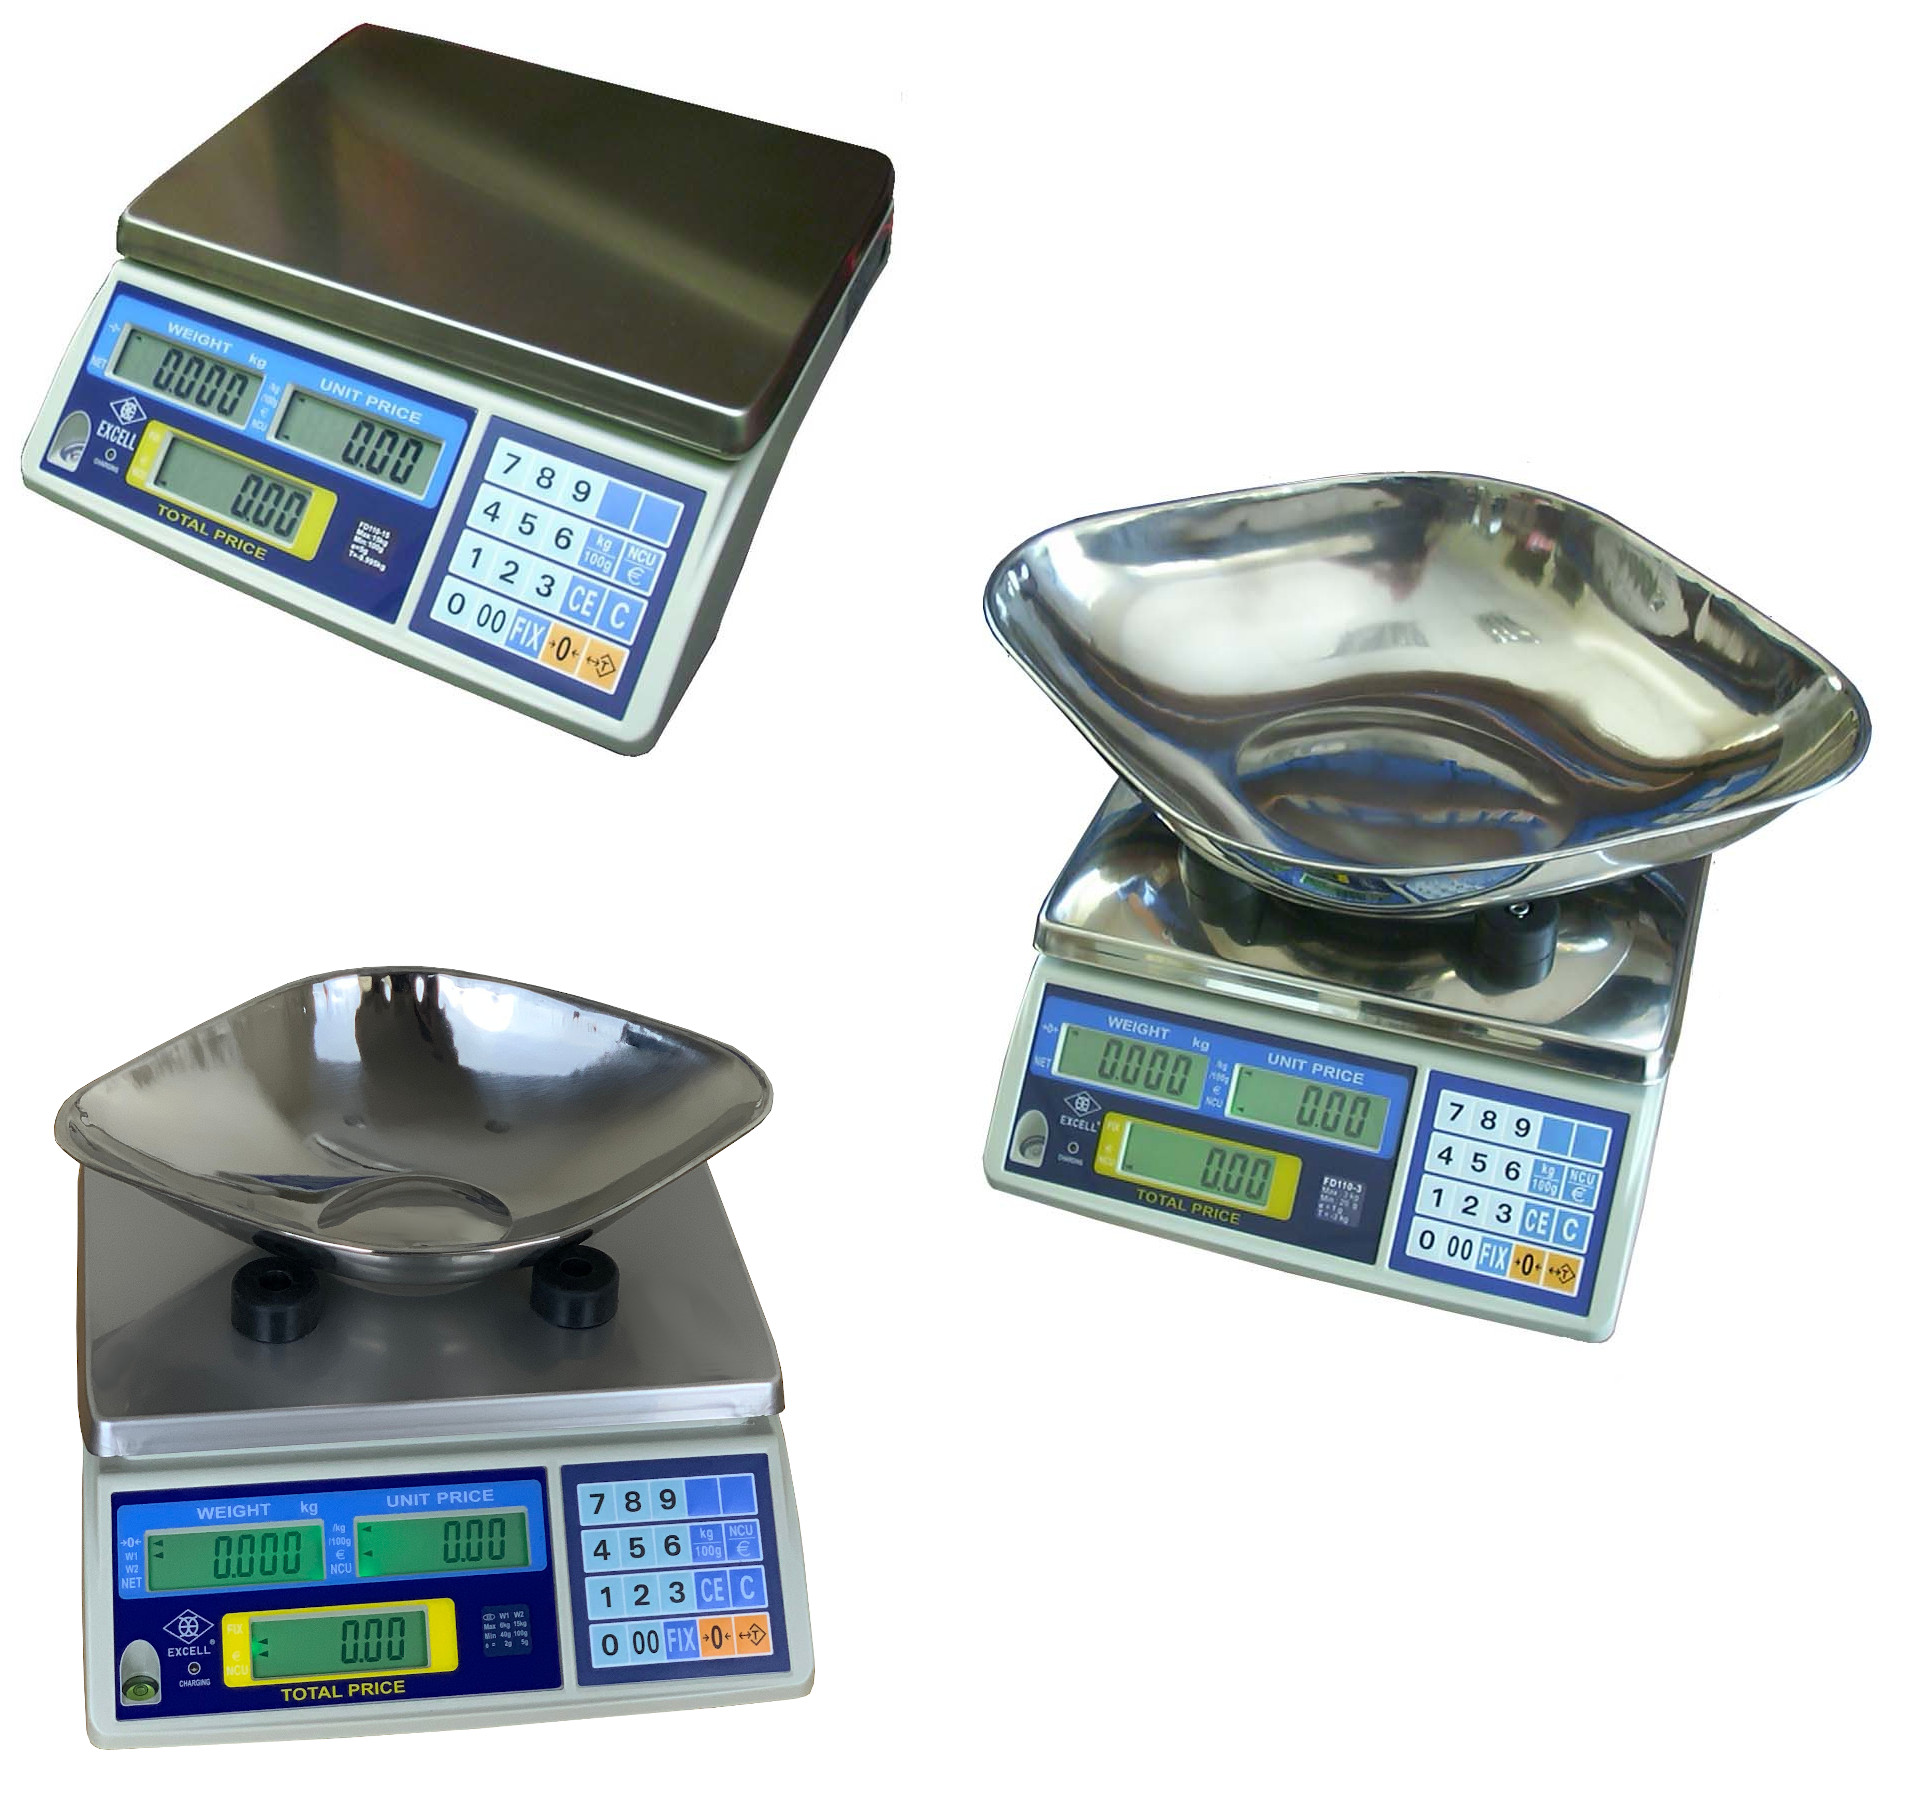 Retail Scales from countyscales.co.uk